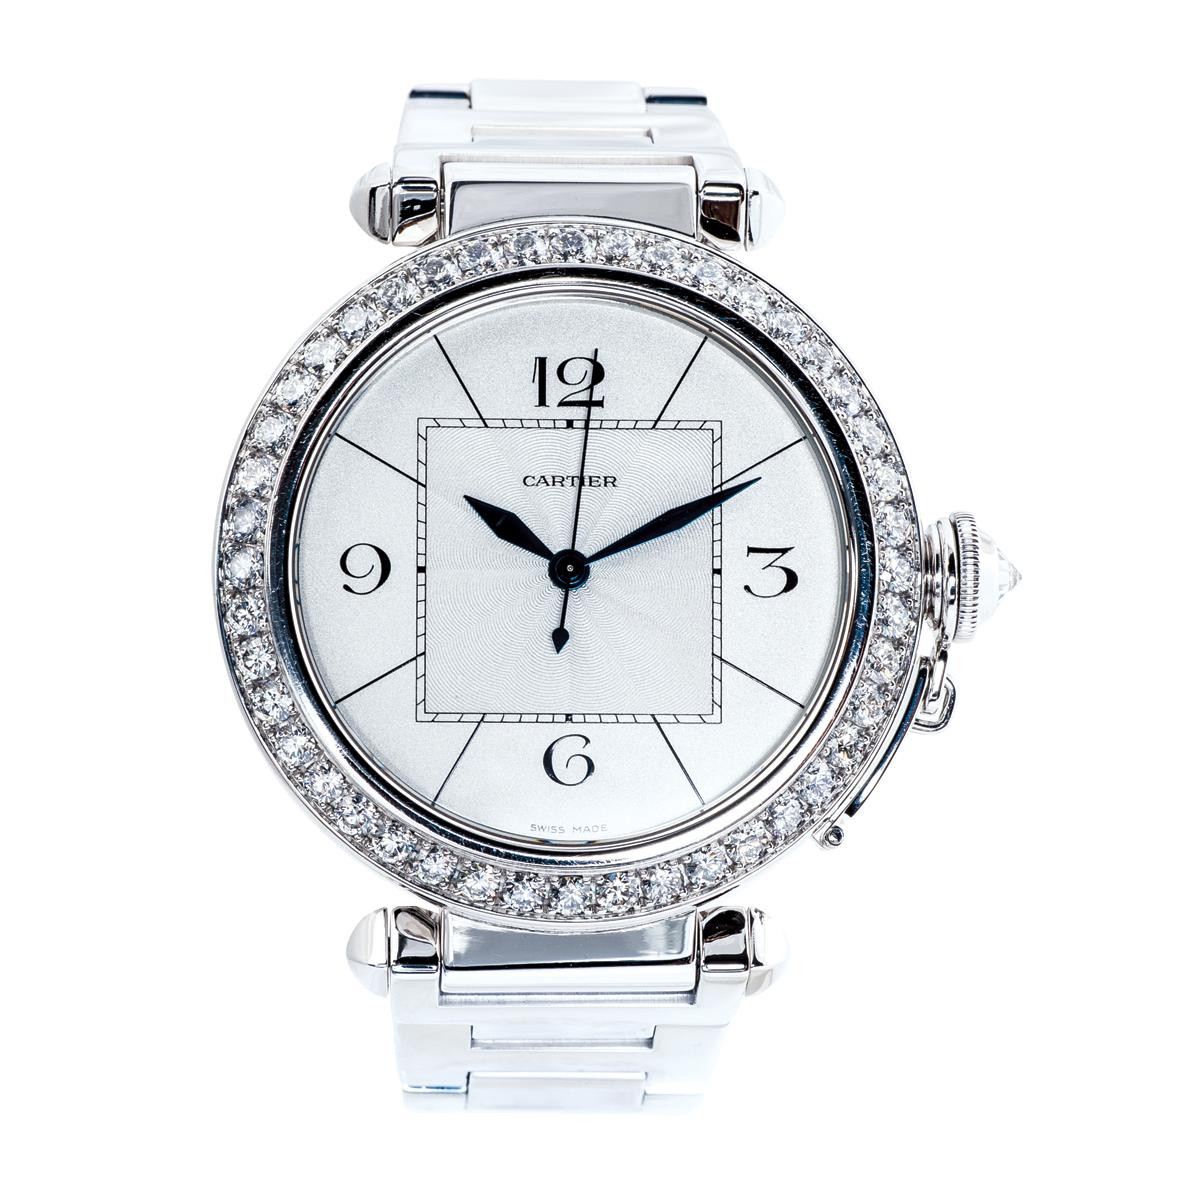 Preowned Cartier 18k White Gold Pasha